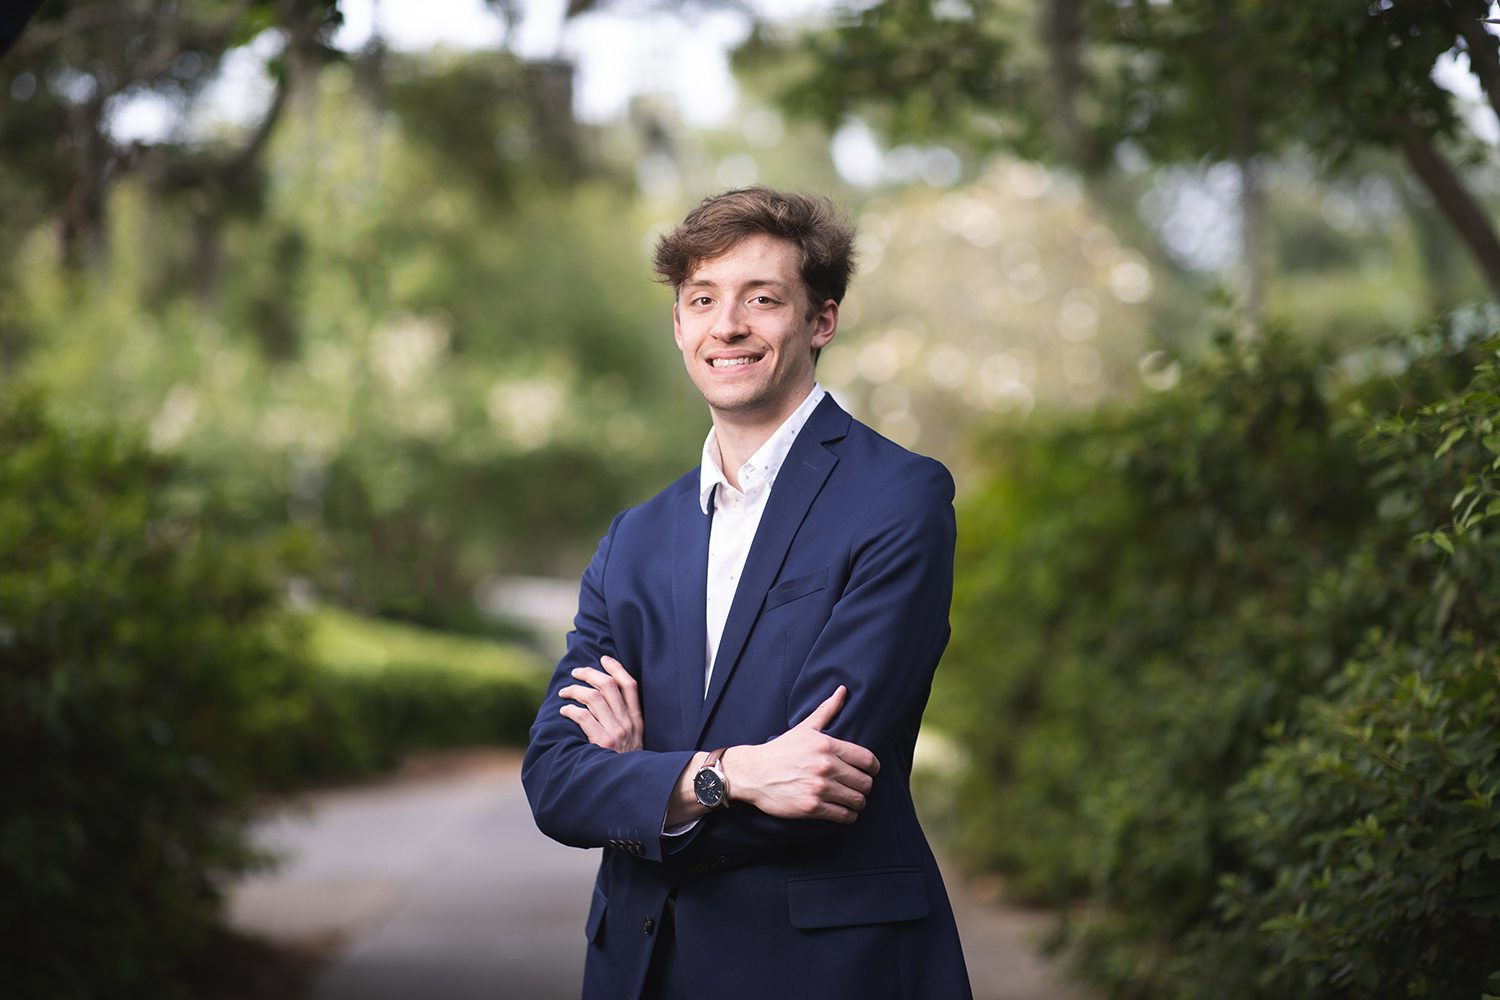 Nathan Thrower, senior professional accountancy and finance double major, accepted an offer for an accountant position at Andrews Research and Education Foundation upon completion of his Fall 2020 internship.